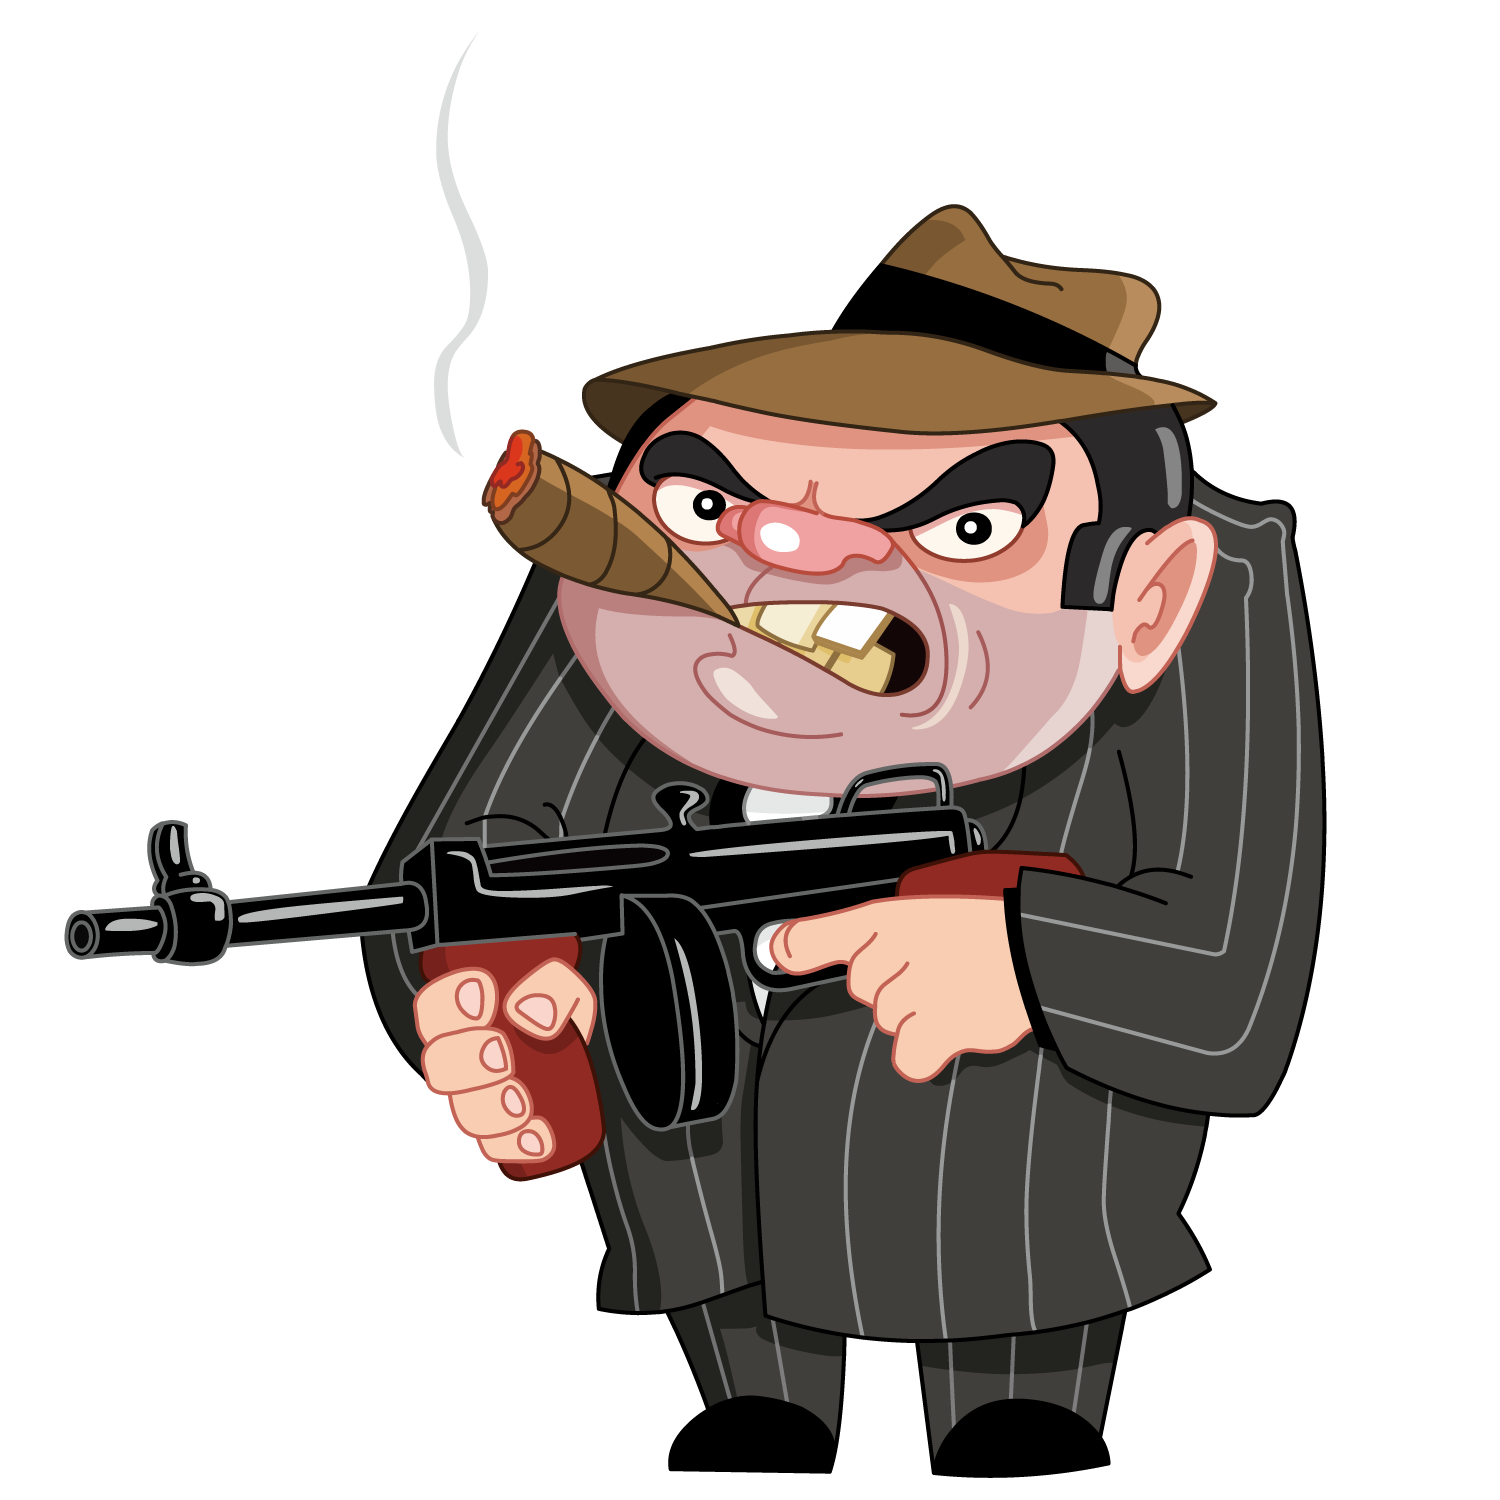 Clipart gun gangster. Cartoon stock photography illustration